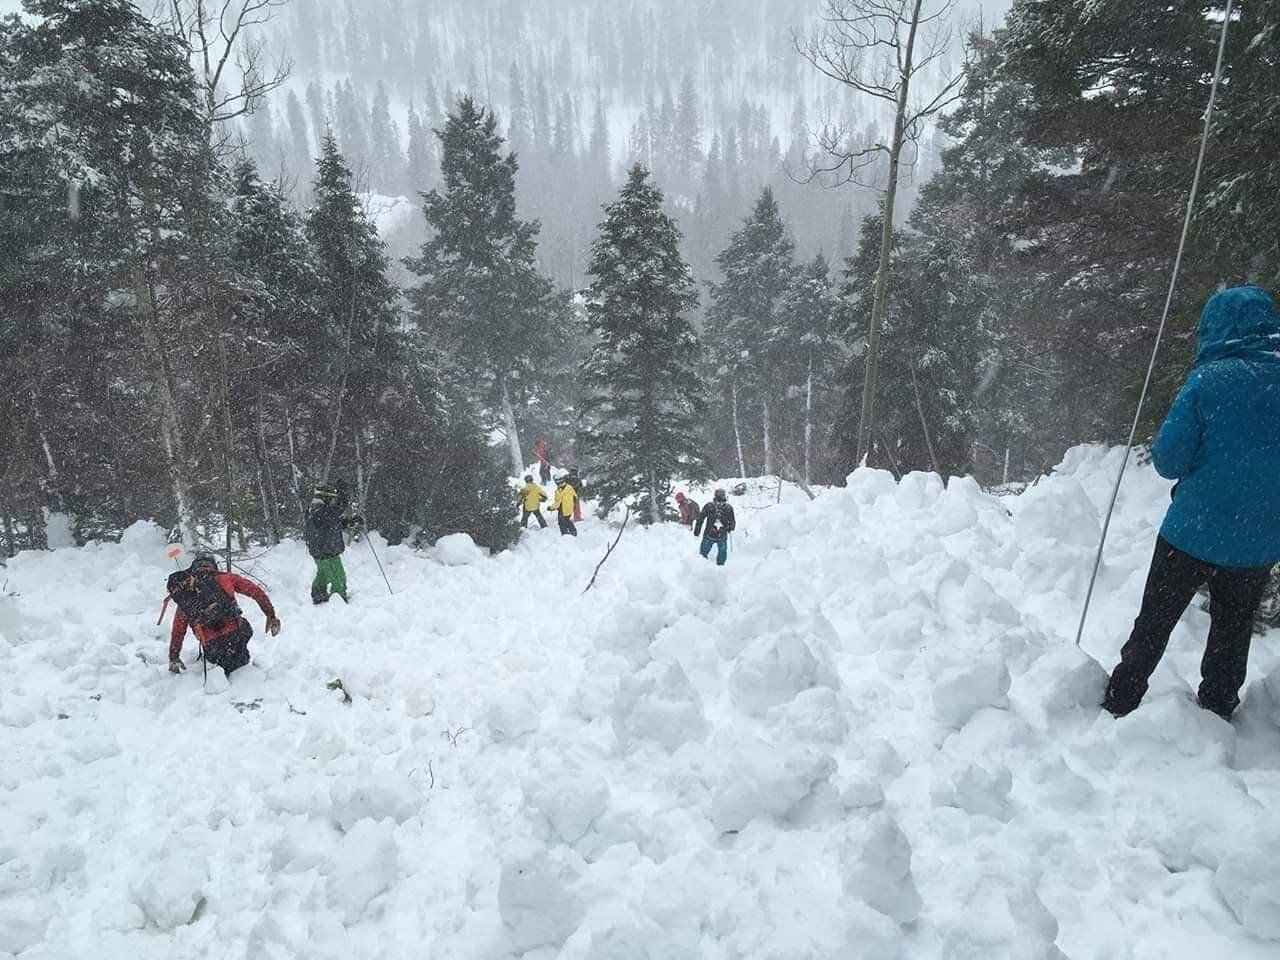 Rescue workers looking for bodies after an avalanche in the Taos Ski Valley in New Mexico on March 13, 2019.